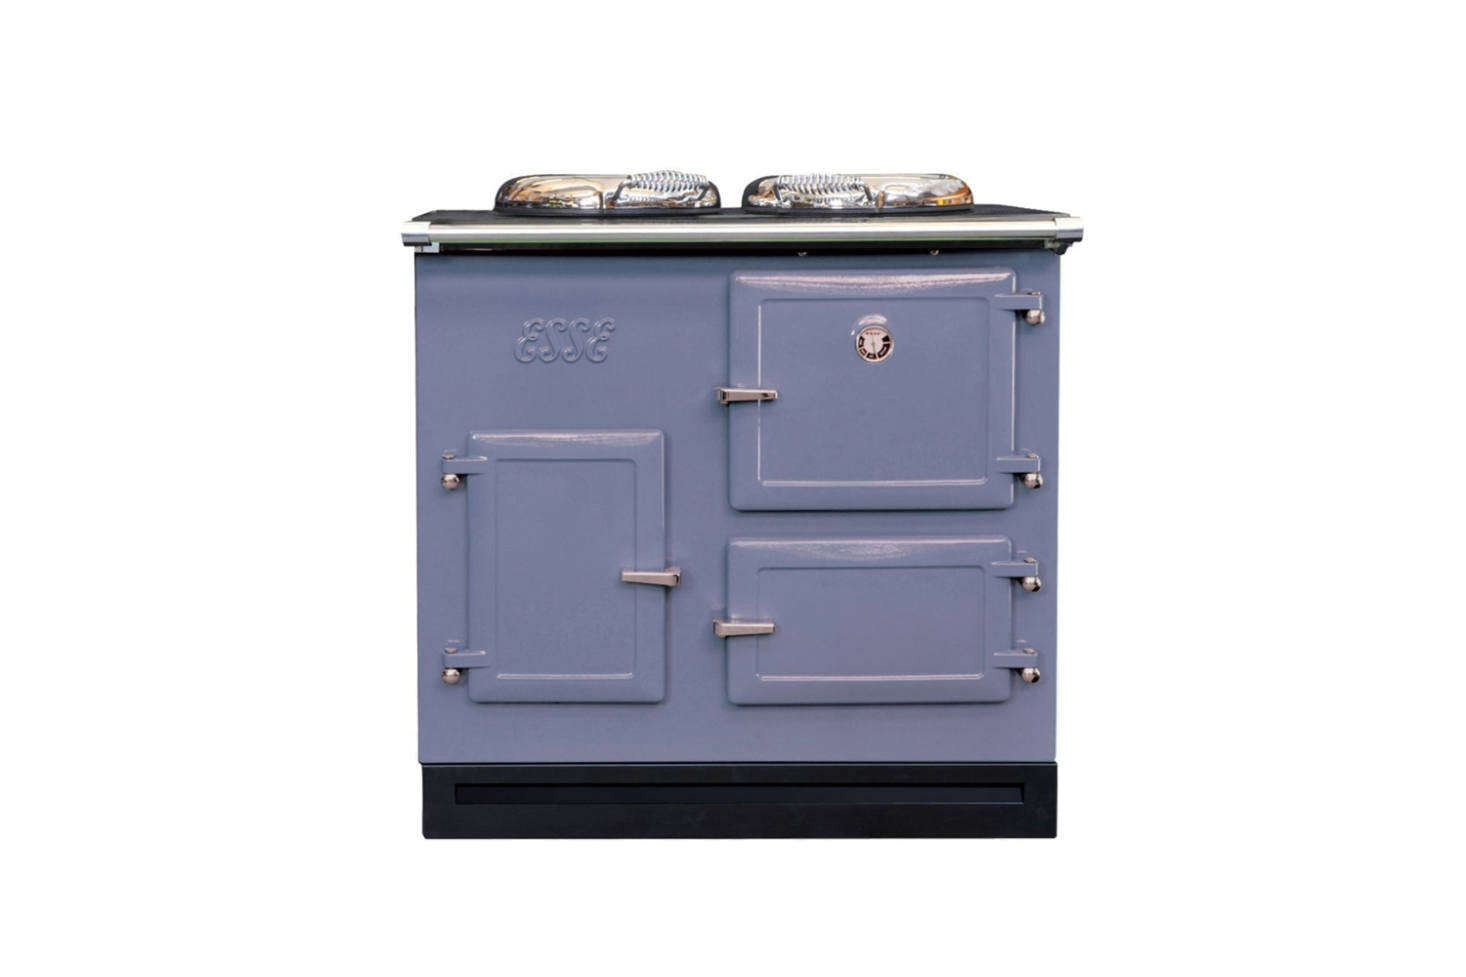 The cast iron Esse Cooker from England is available in a range of color options and oven combinations. The Esse CAT 905mm Flueless Gas Cooker, shown, is priced around £5,900 through Walter Dix & Co., who also offer display ovens for a lesser price. The ovens can be sourced directly through Esse as well.